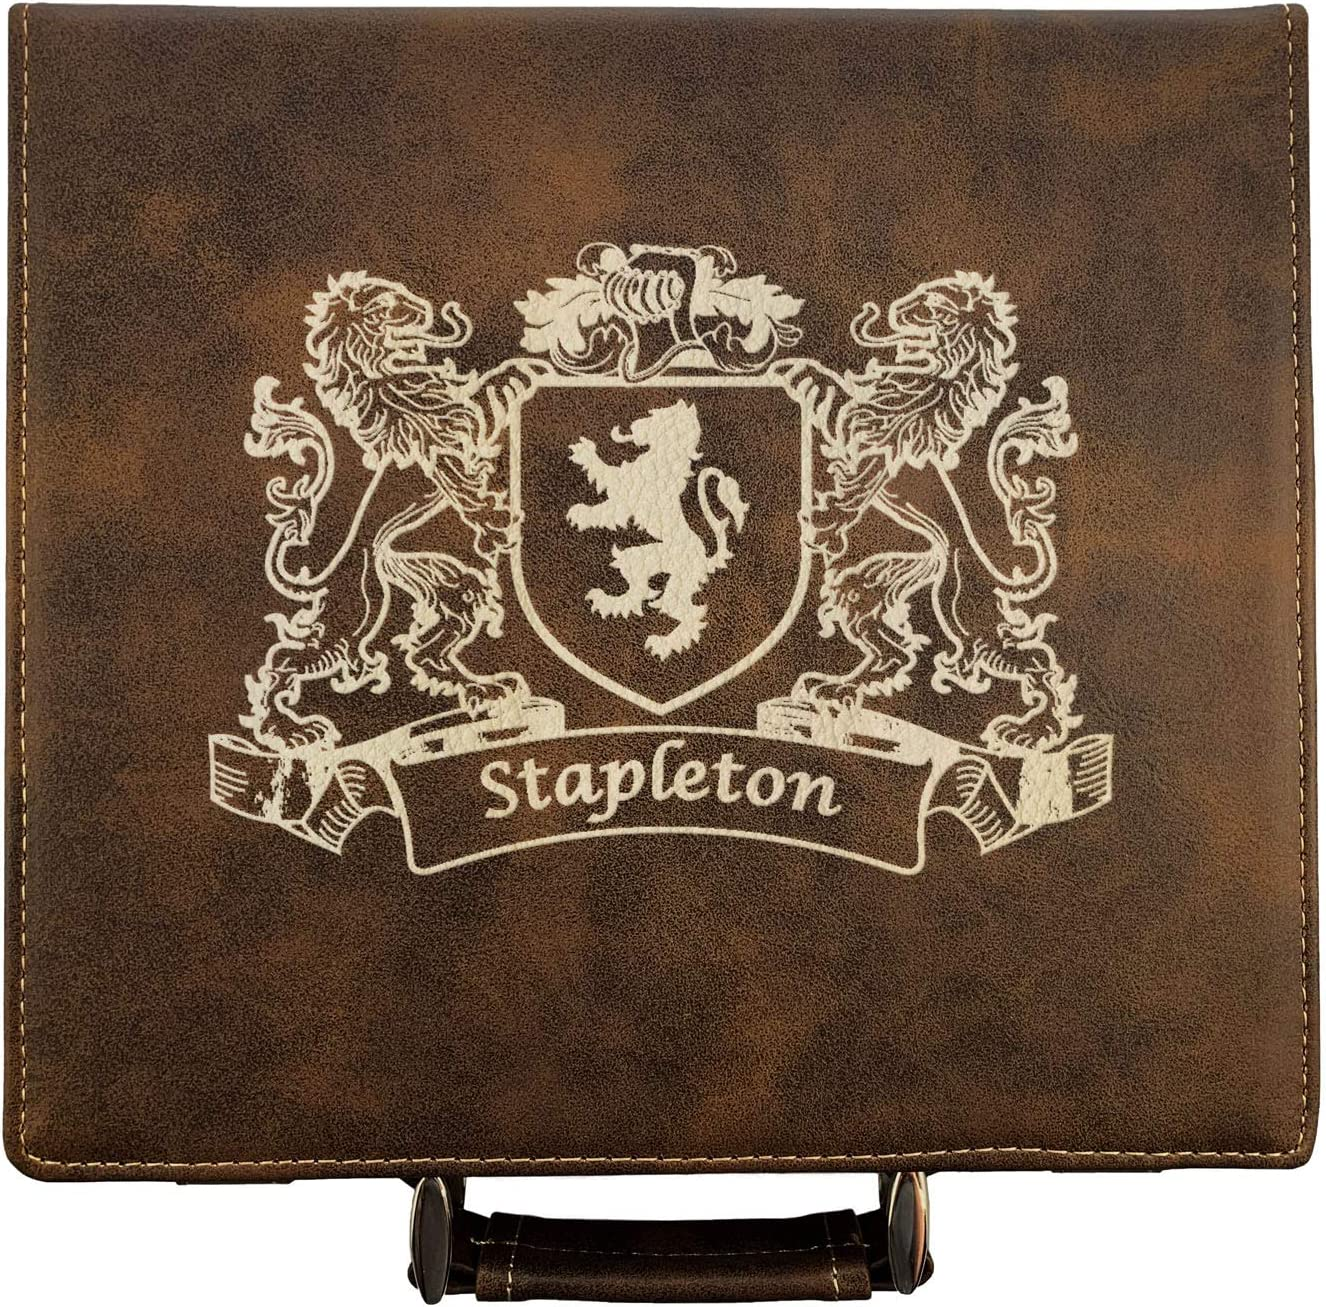 70% OFF Outlet Stapleton Irish Coat of Arms Set Leather Poker Surprise price